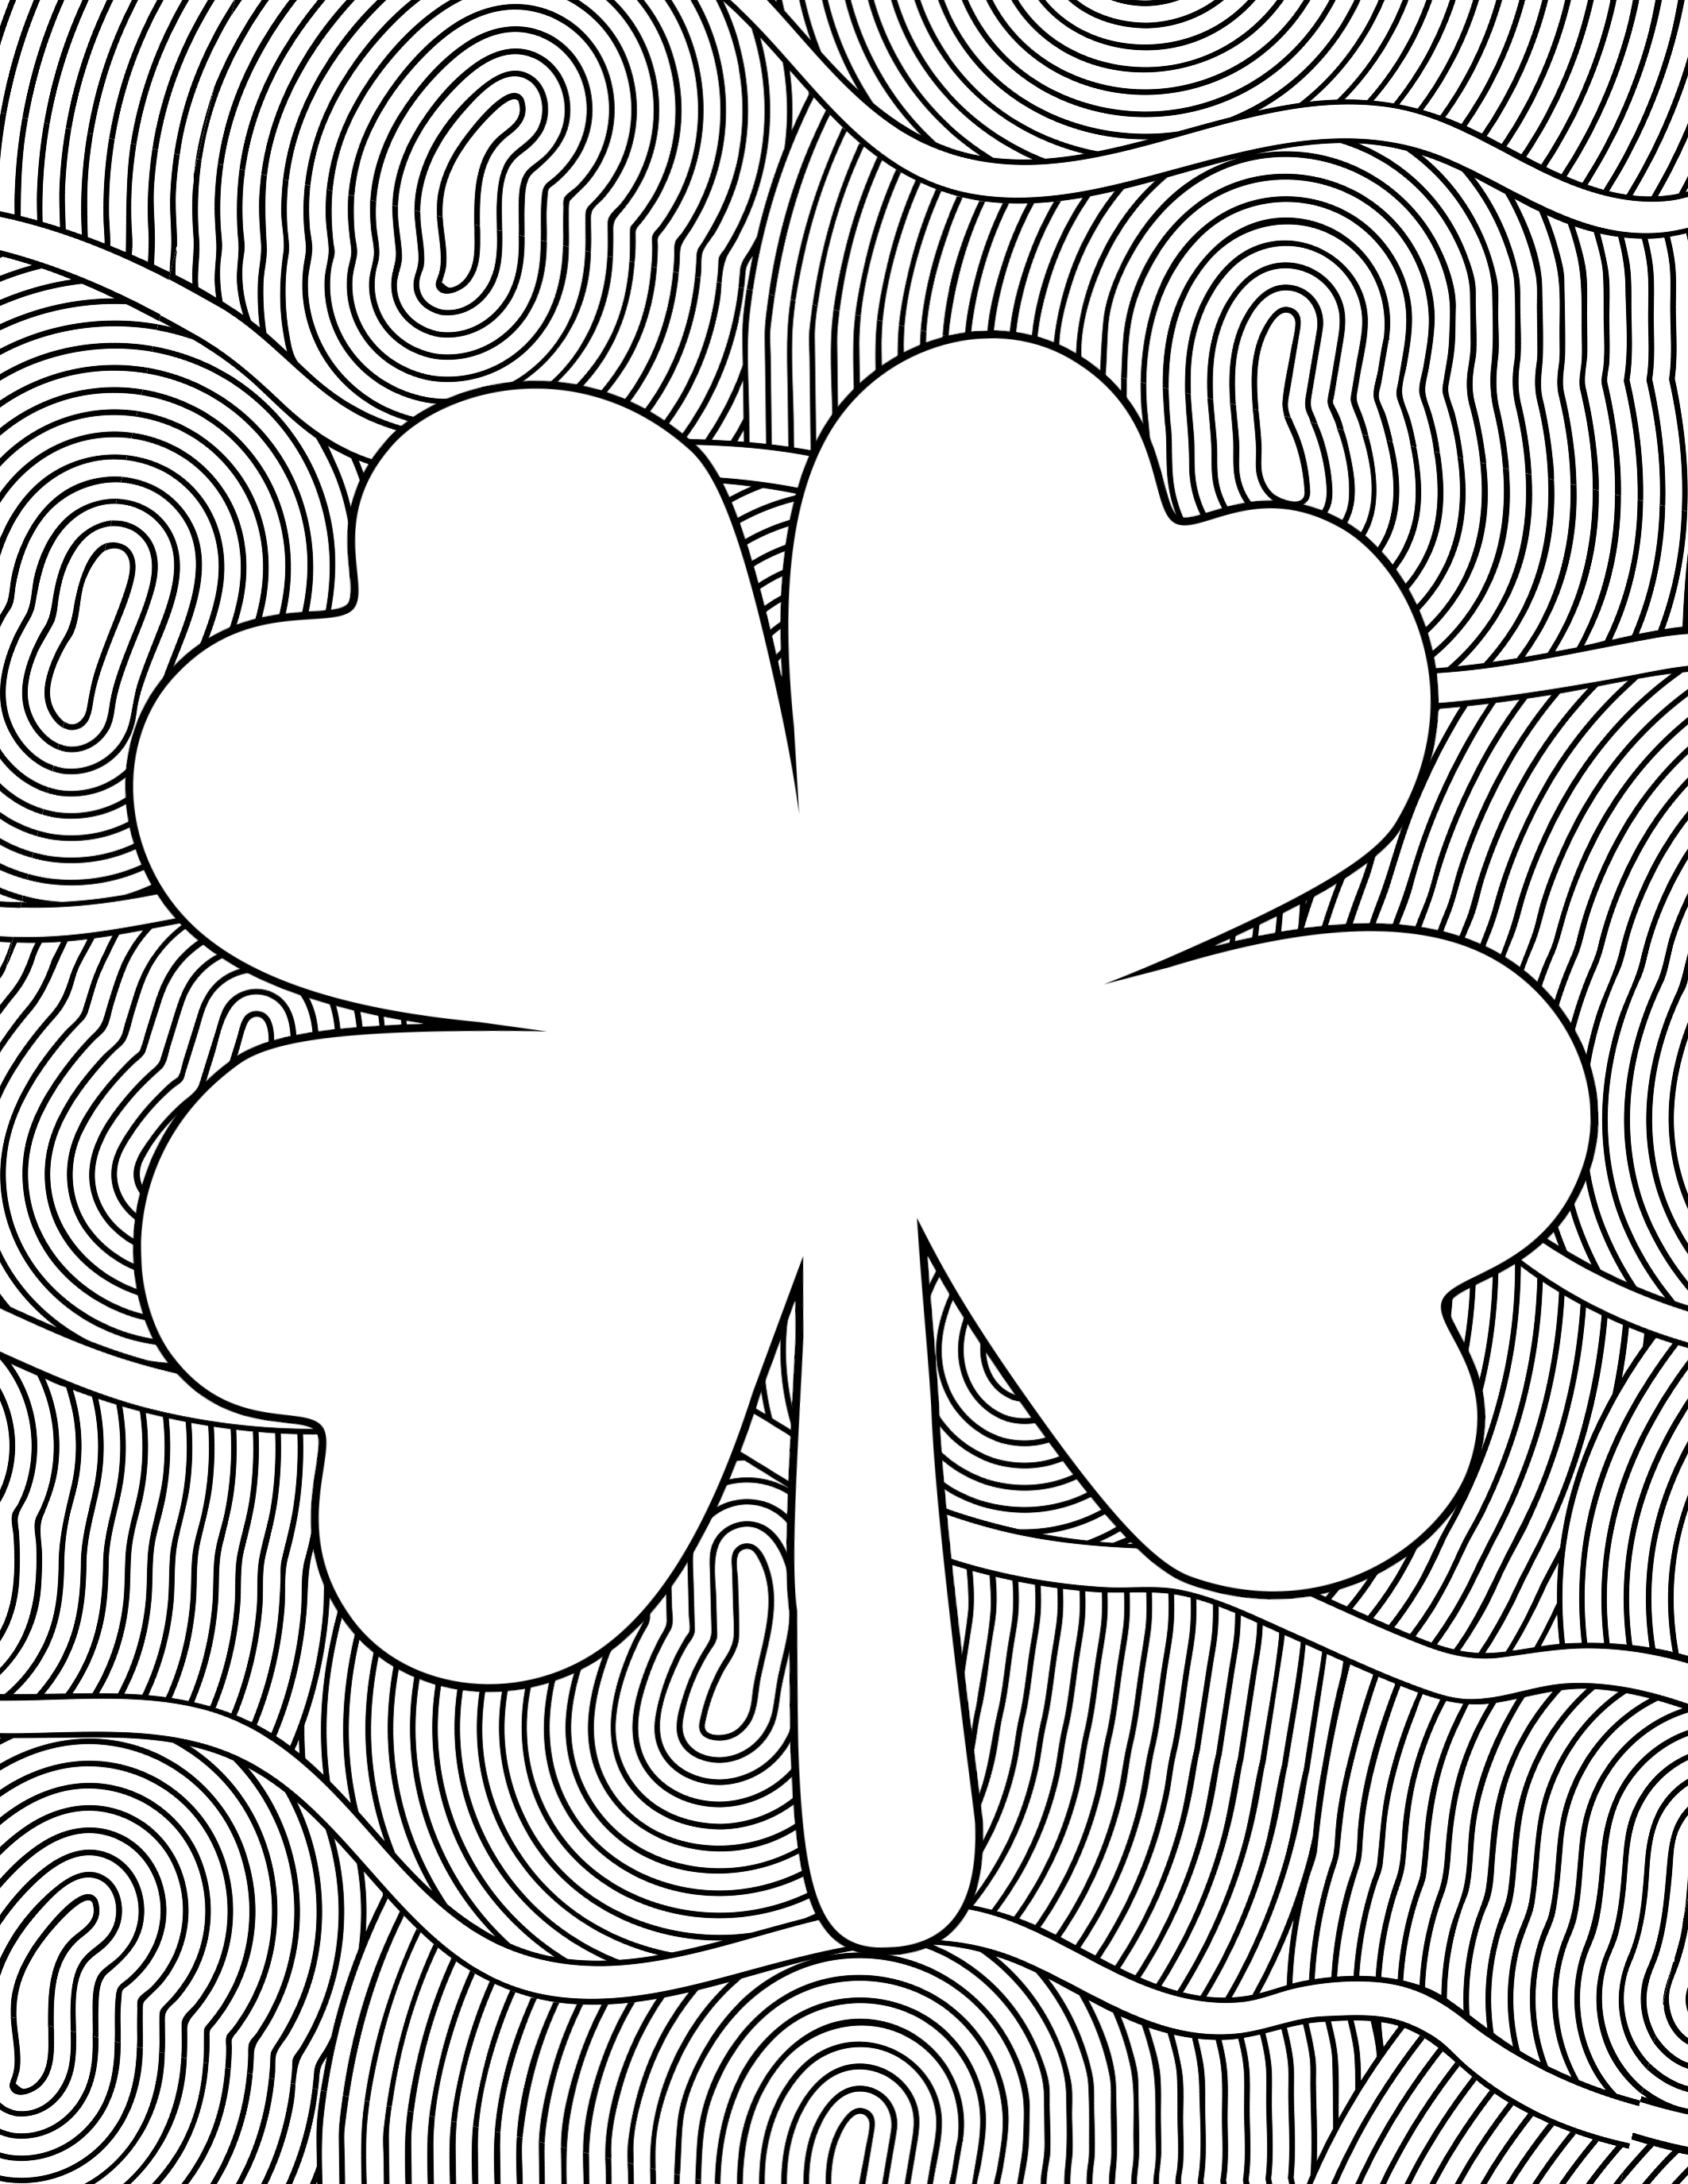 Free Printable St. Patrick\'s Day Coloring Sheets - Paper Trail Design